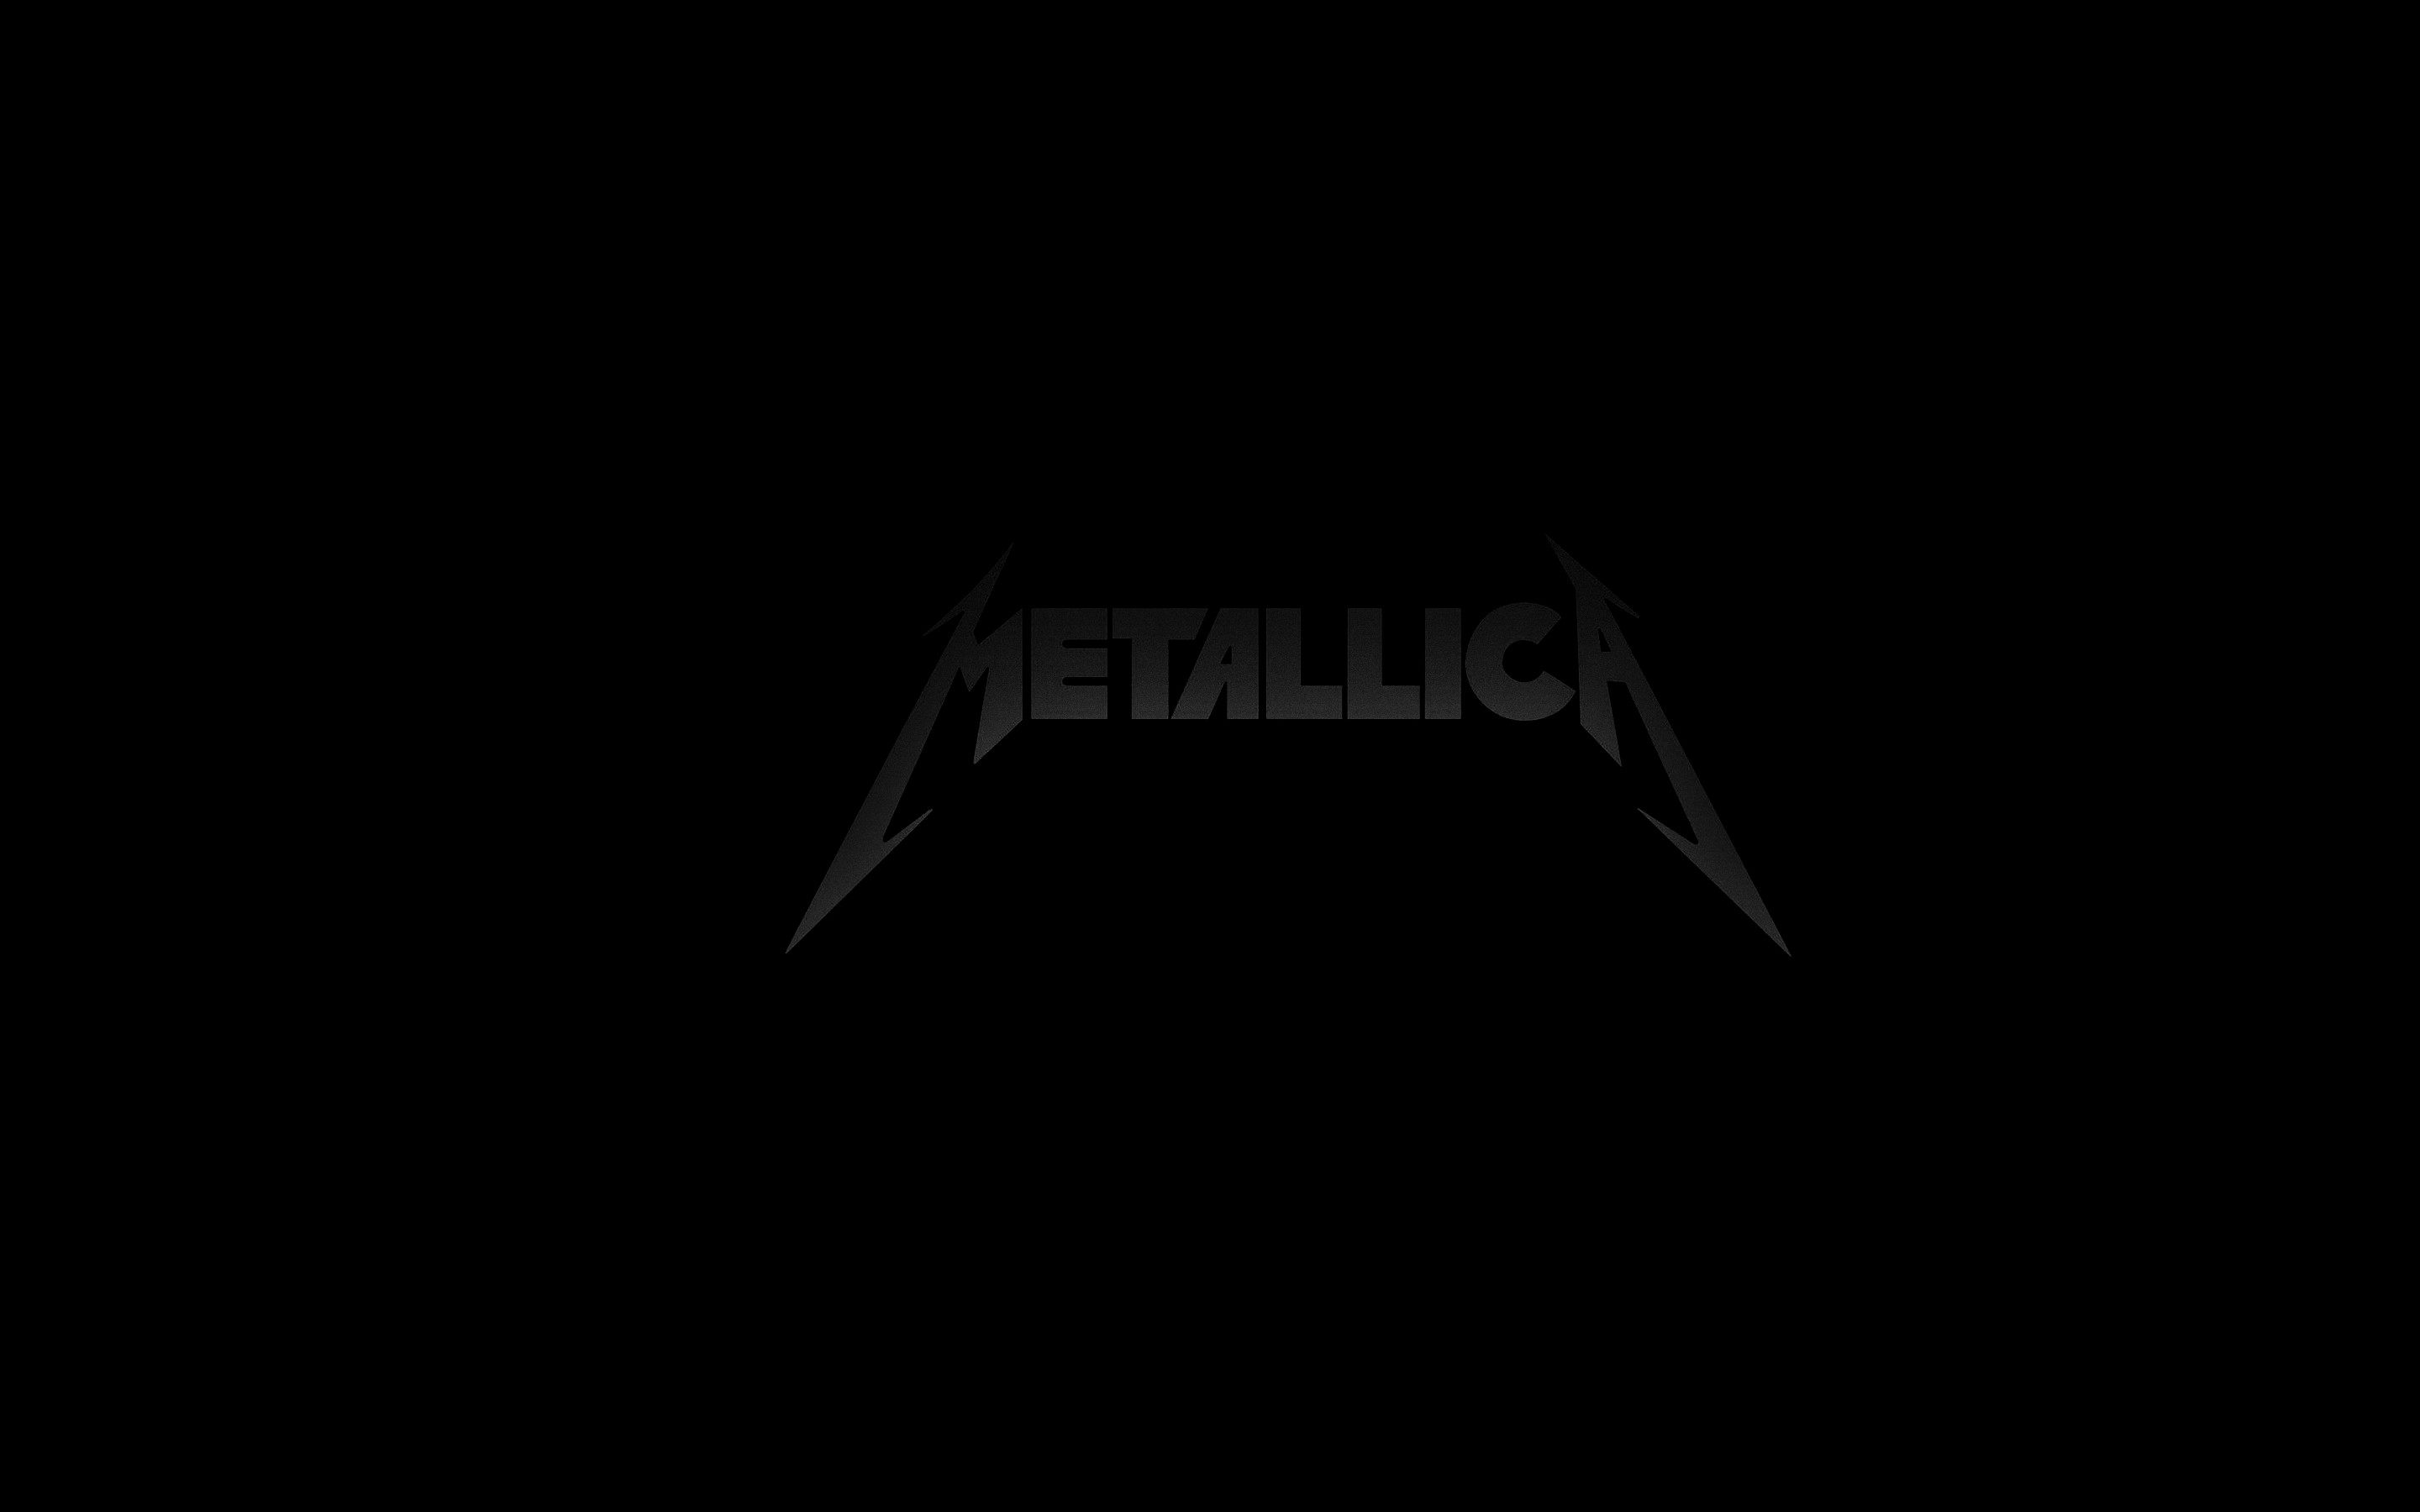 metallica black album wallpaper 61 pictures. Black Bedroom Furniture Sets. Home Design Ideas